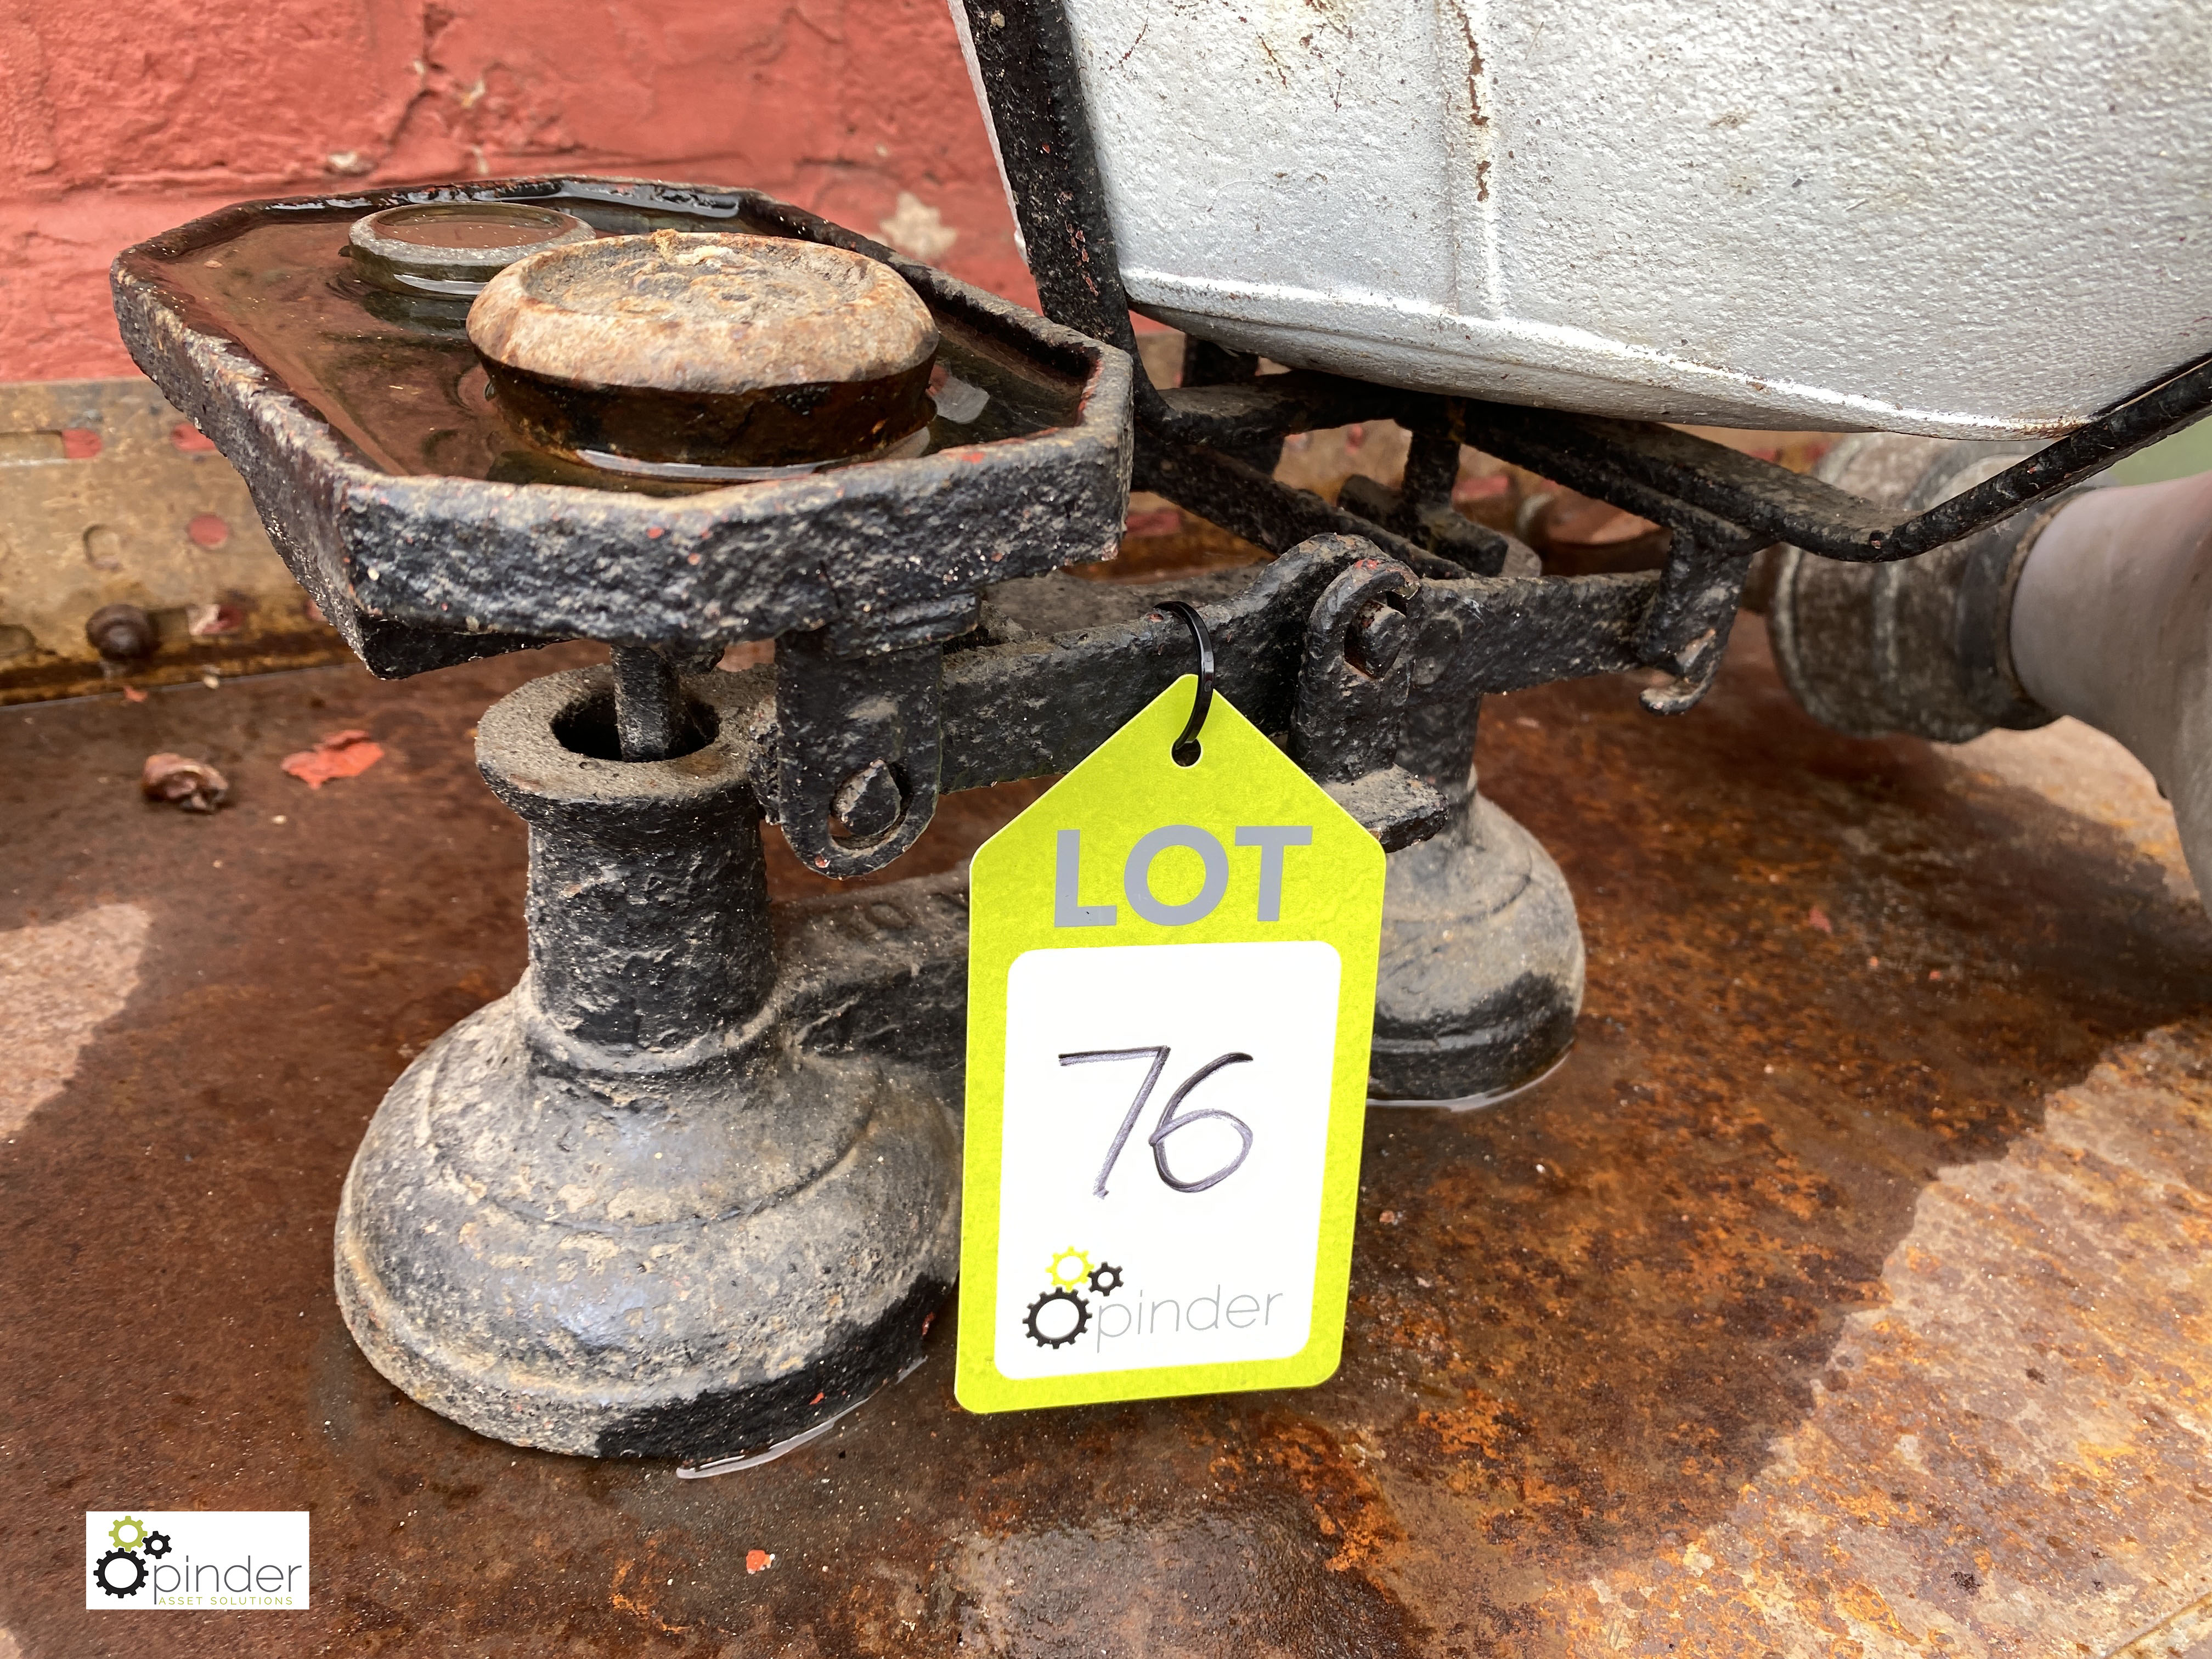 Cast iron counter top counterbalance Weighing Scales, 7lbs, with quantity various weights (LOCATION: - Image 3 of 4